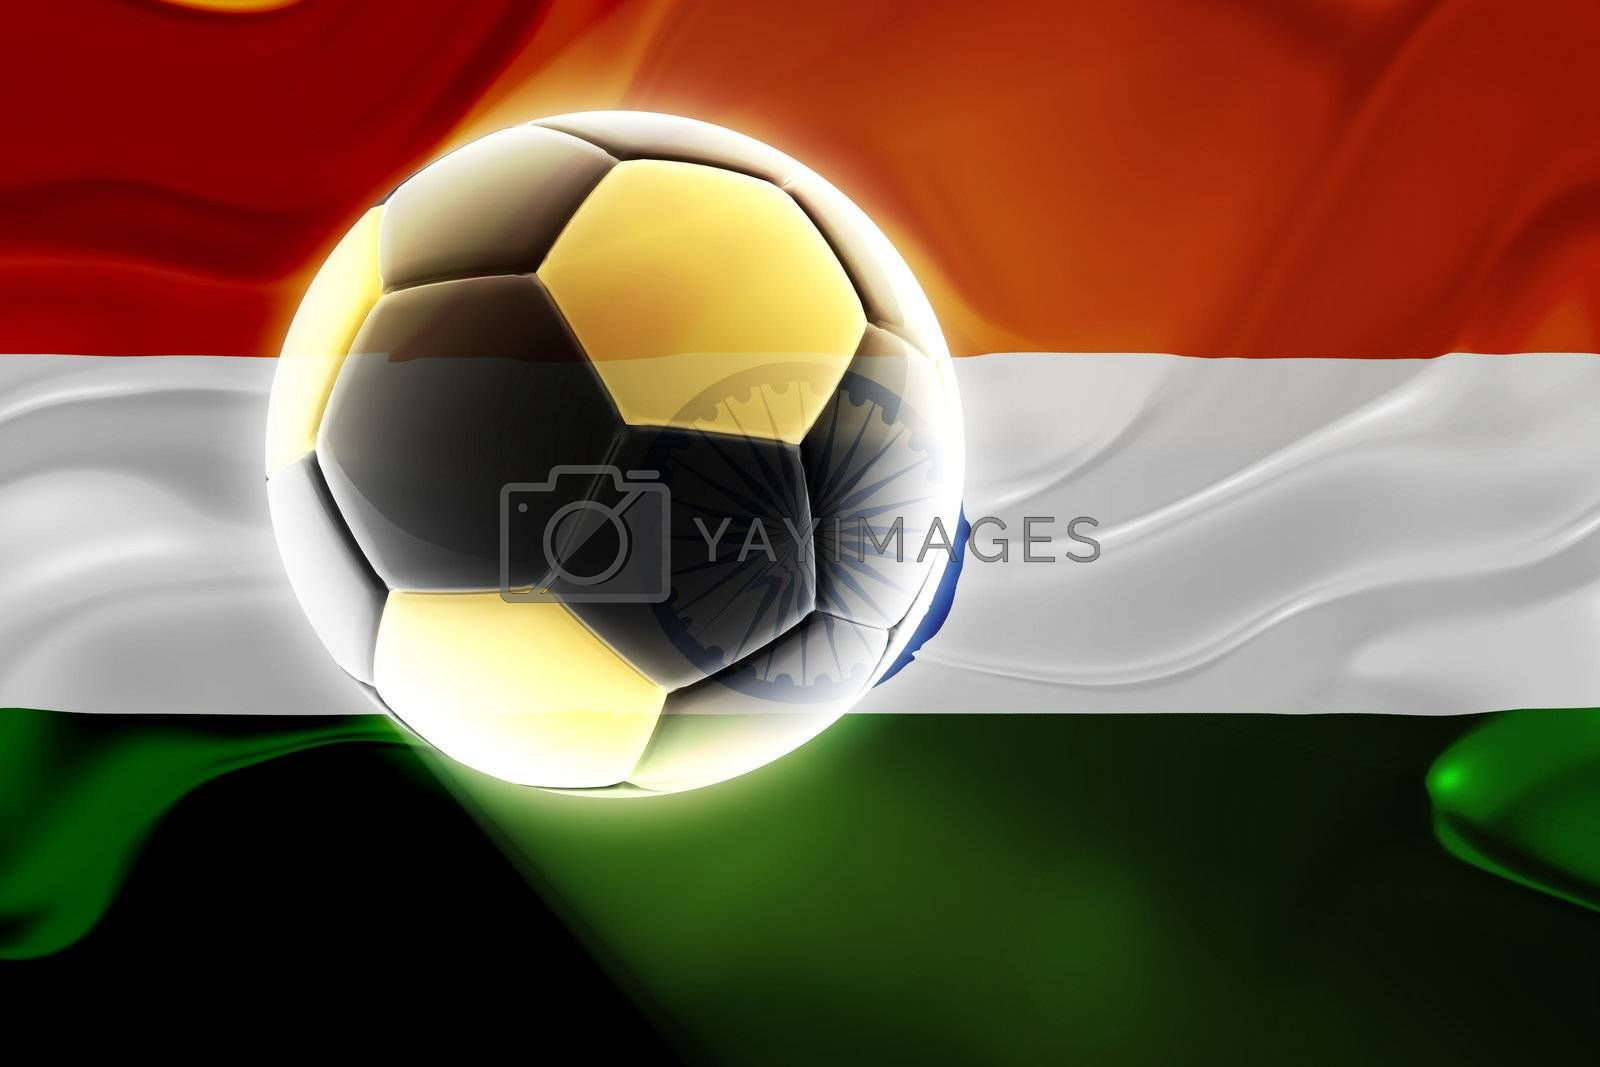 Flag of India, national country symbol illustration wavy fabric sports soccer football